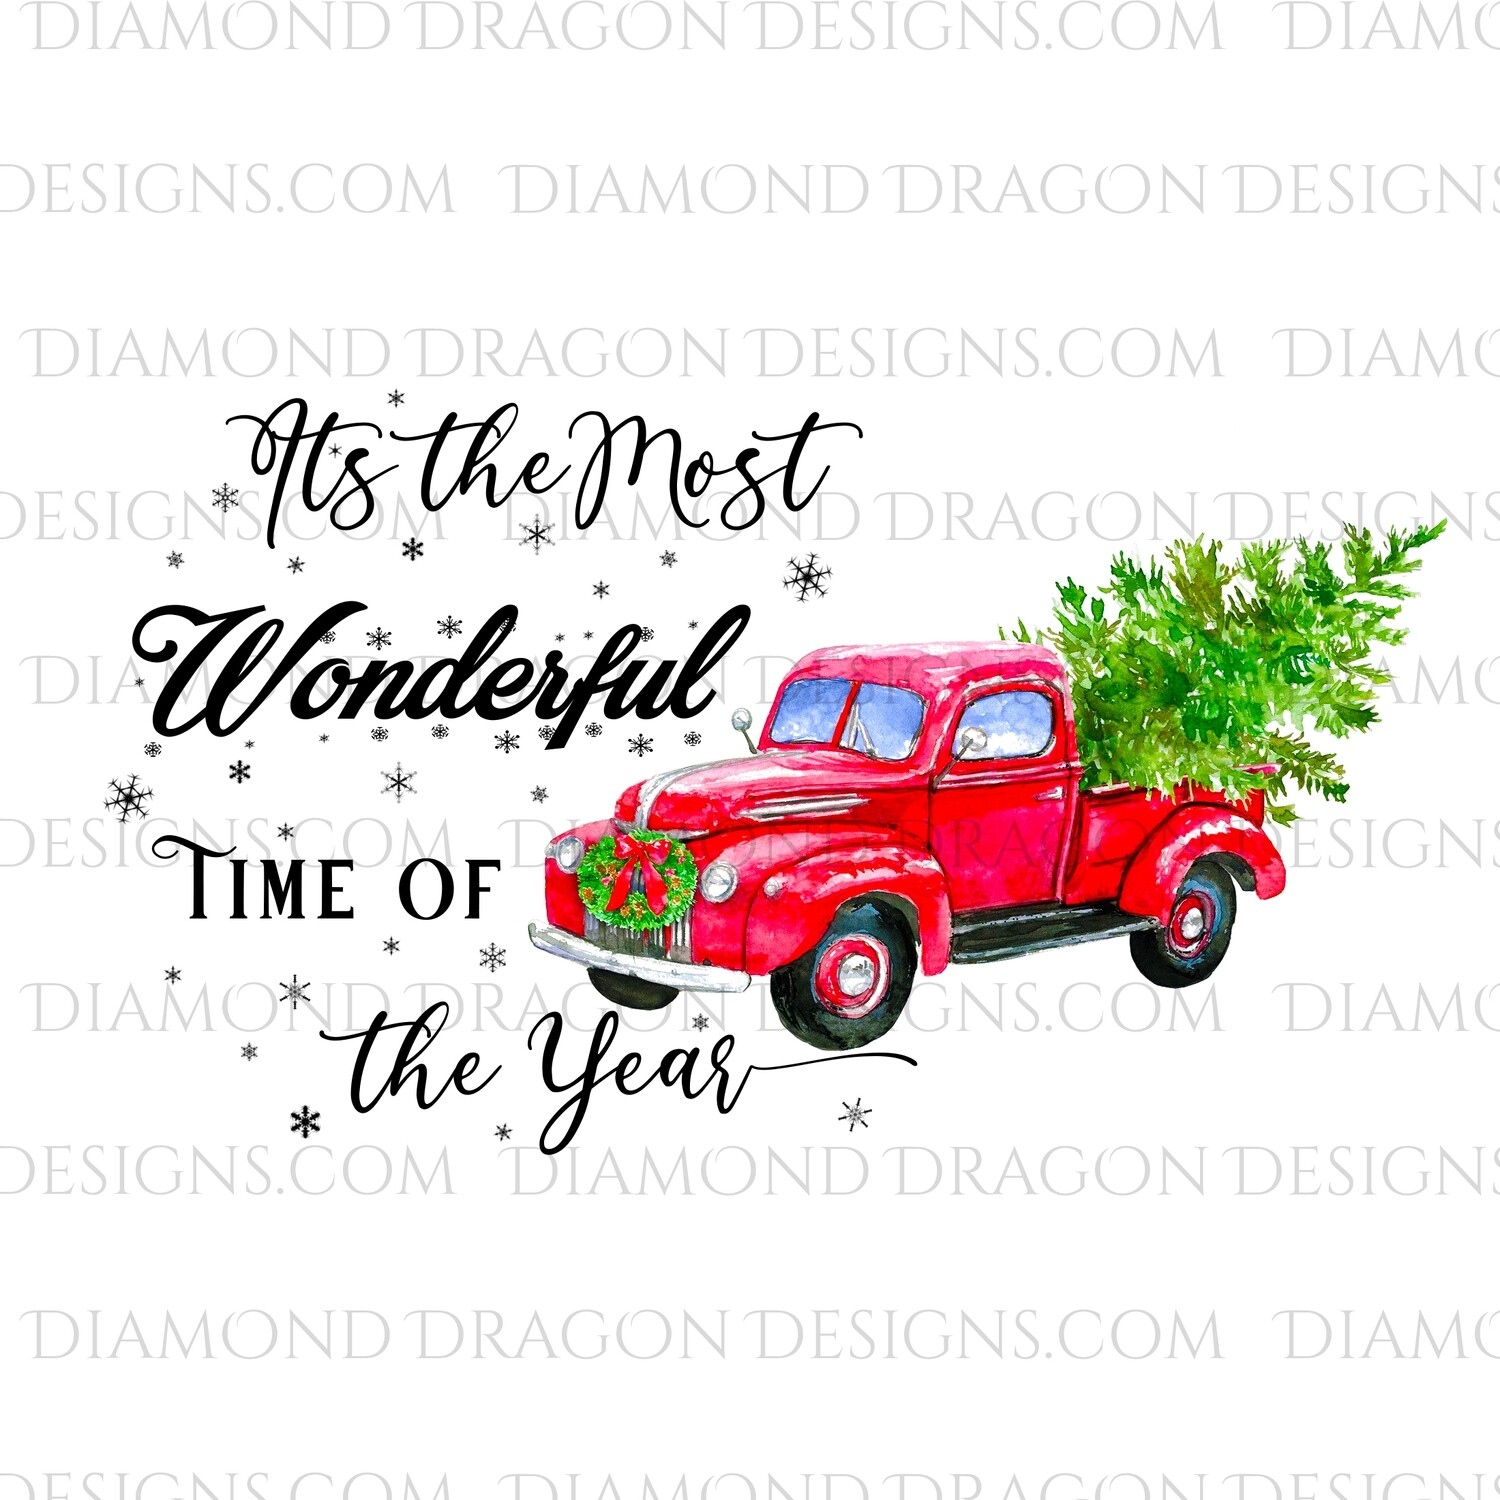 Christmas - Red Truck, Christmas Tree, It's the most wonderful time, Red Vintage Truck 4, Waterslide